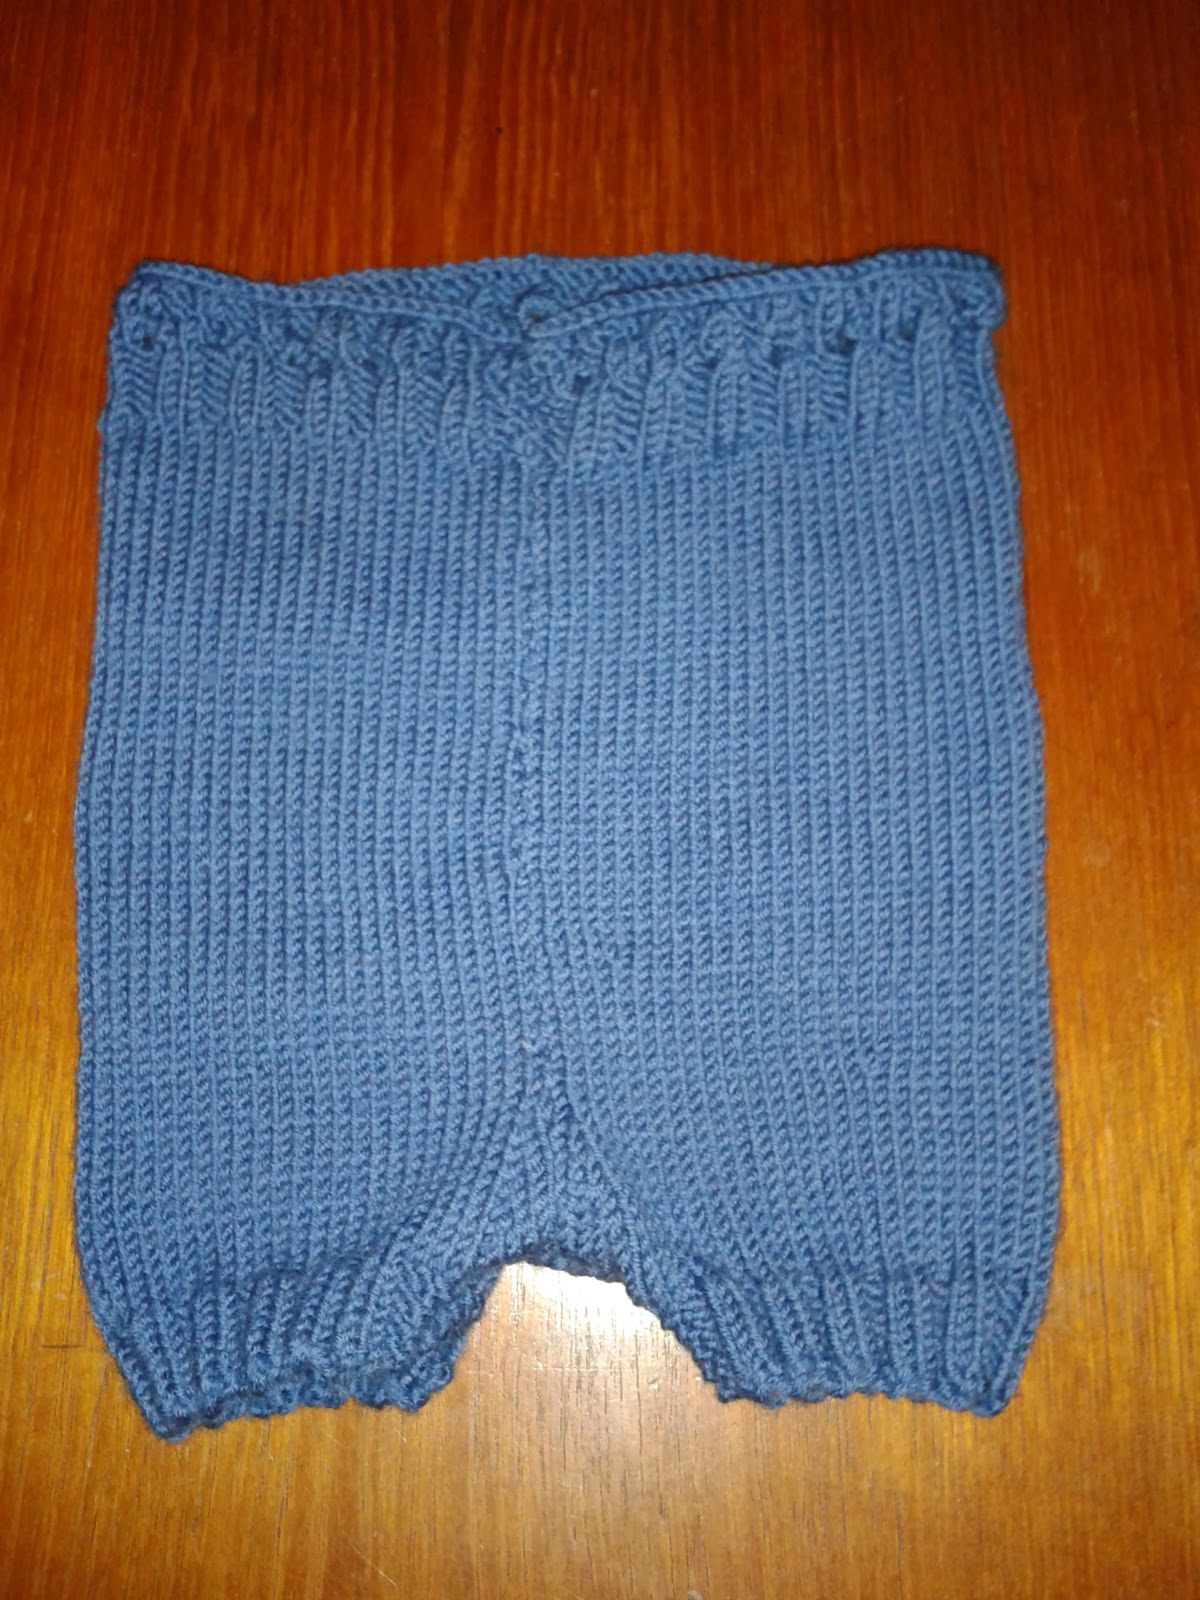 Blue knitted wool nappy cover, shorties